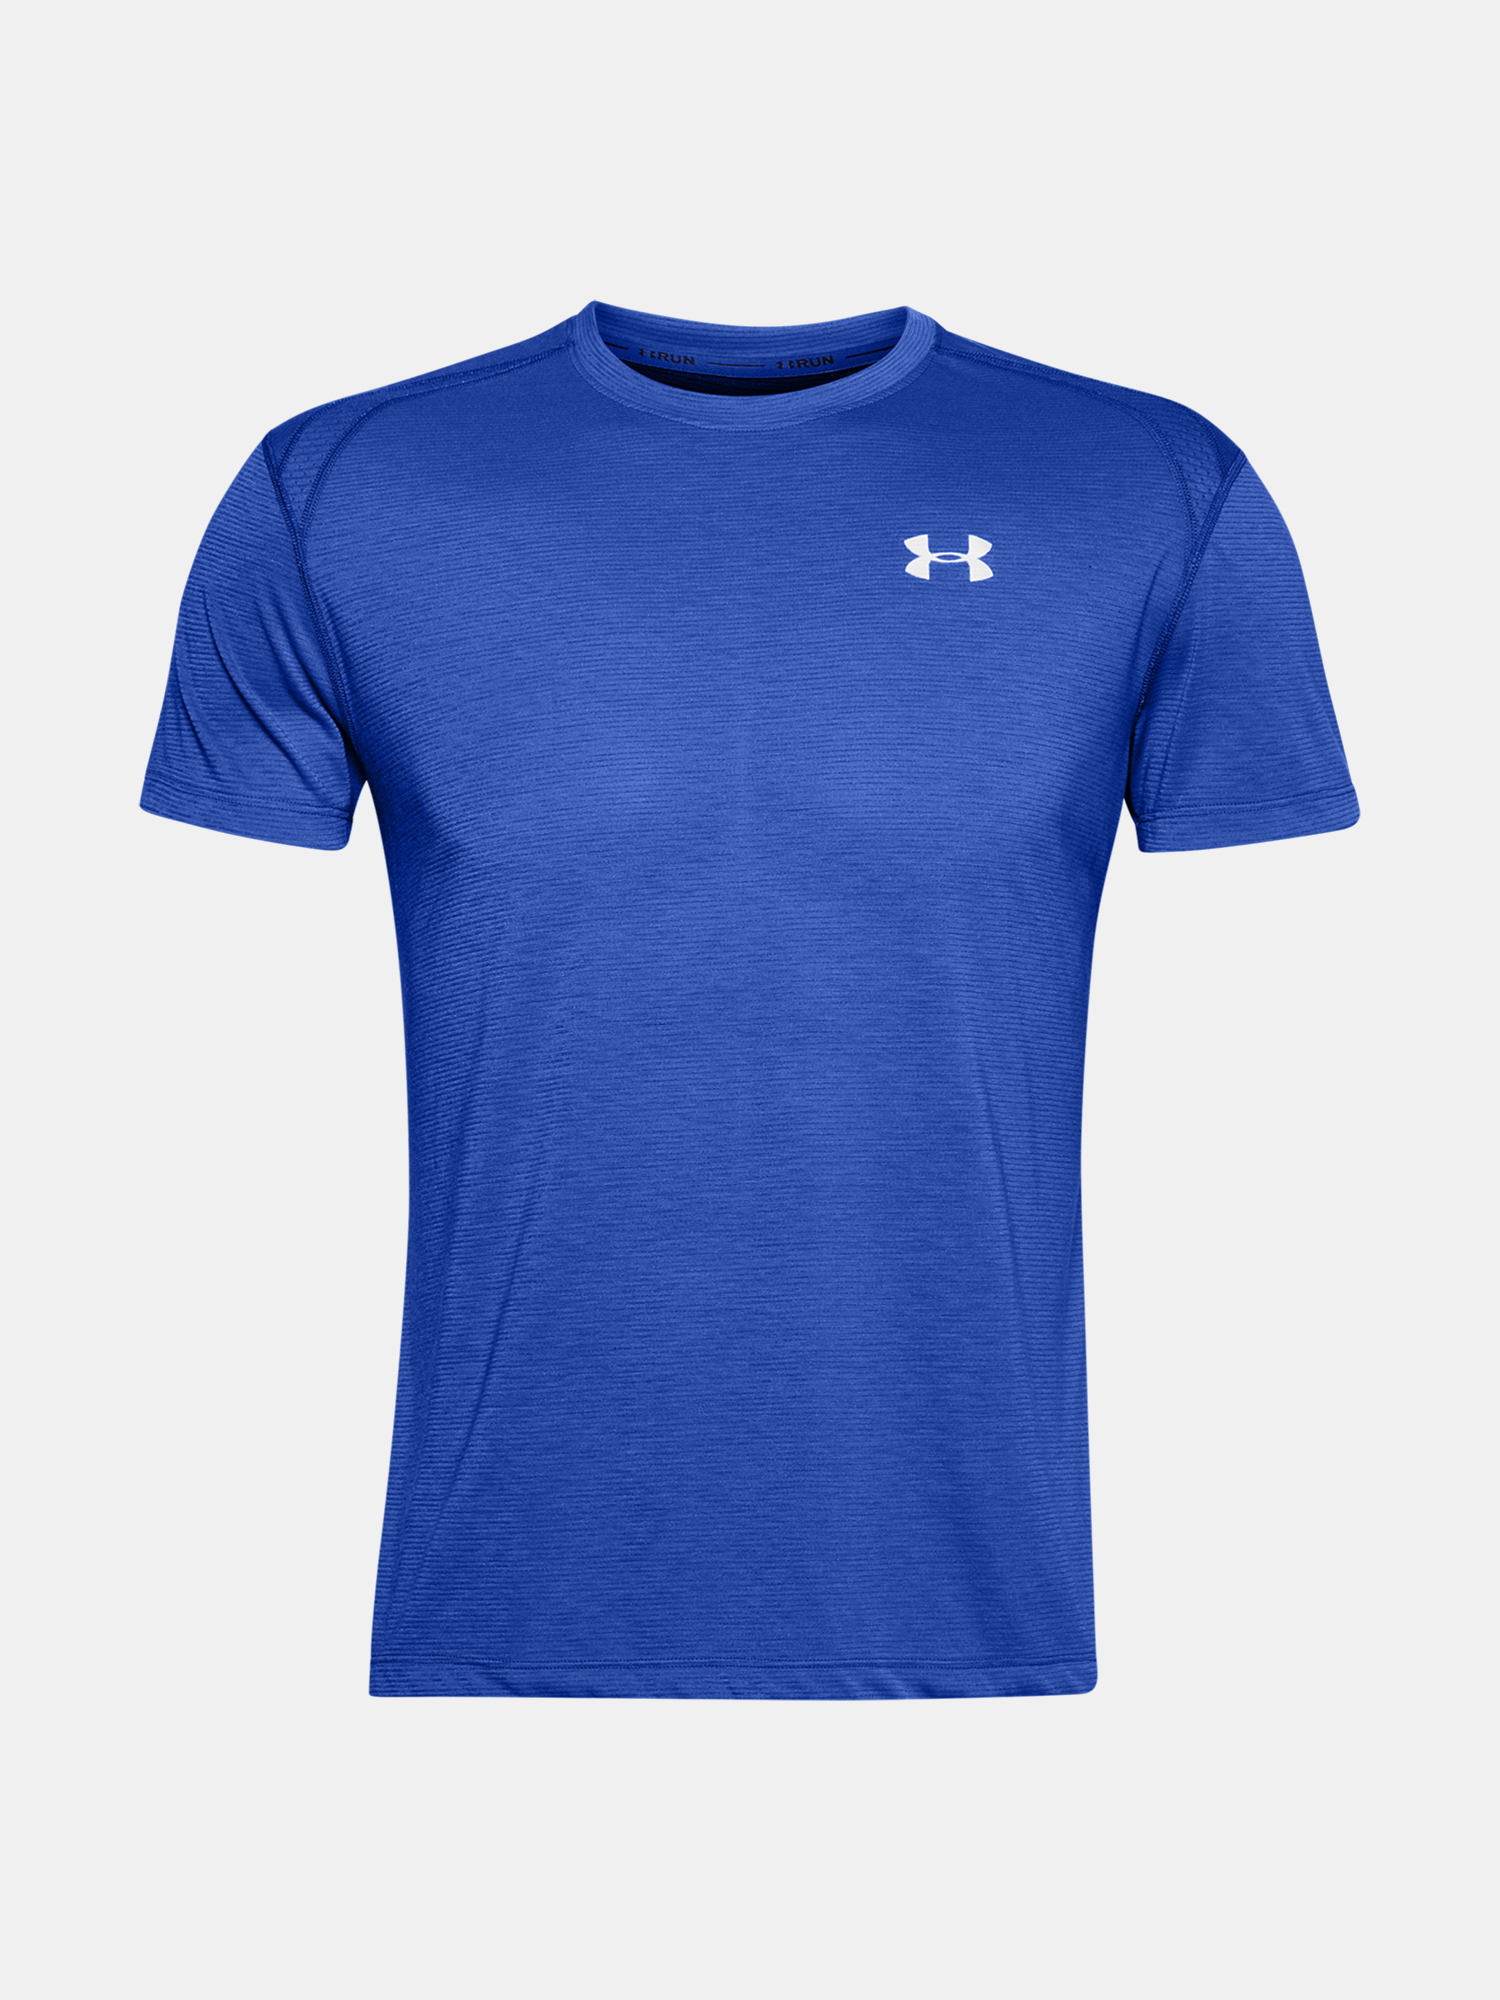 Tričko Under Armour STREAKER 2.0 SHORTSLEEVE-BLU (3)